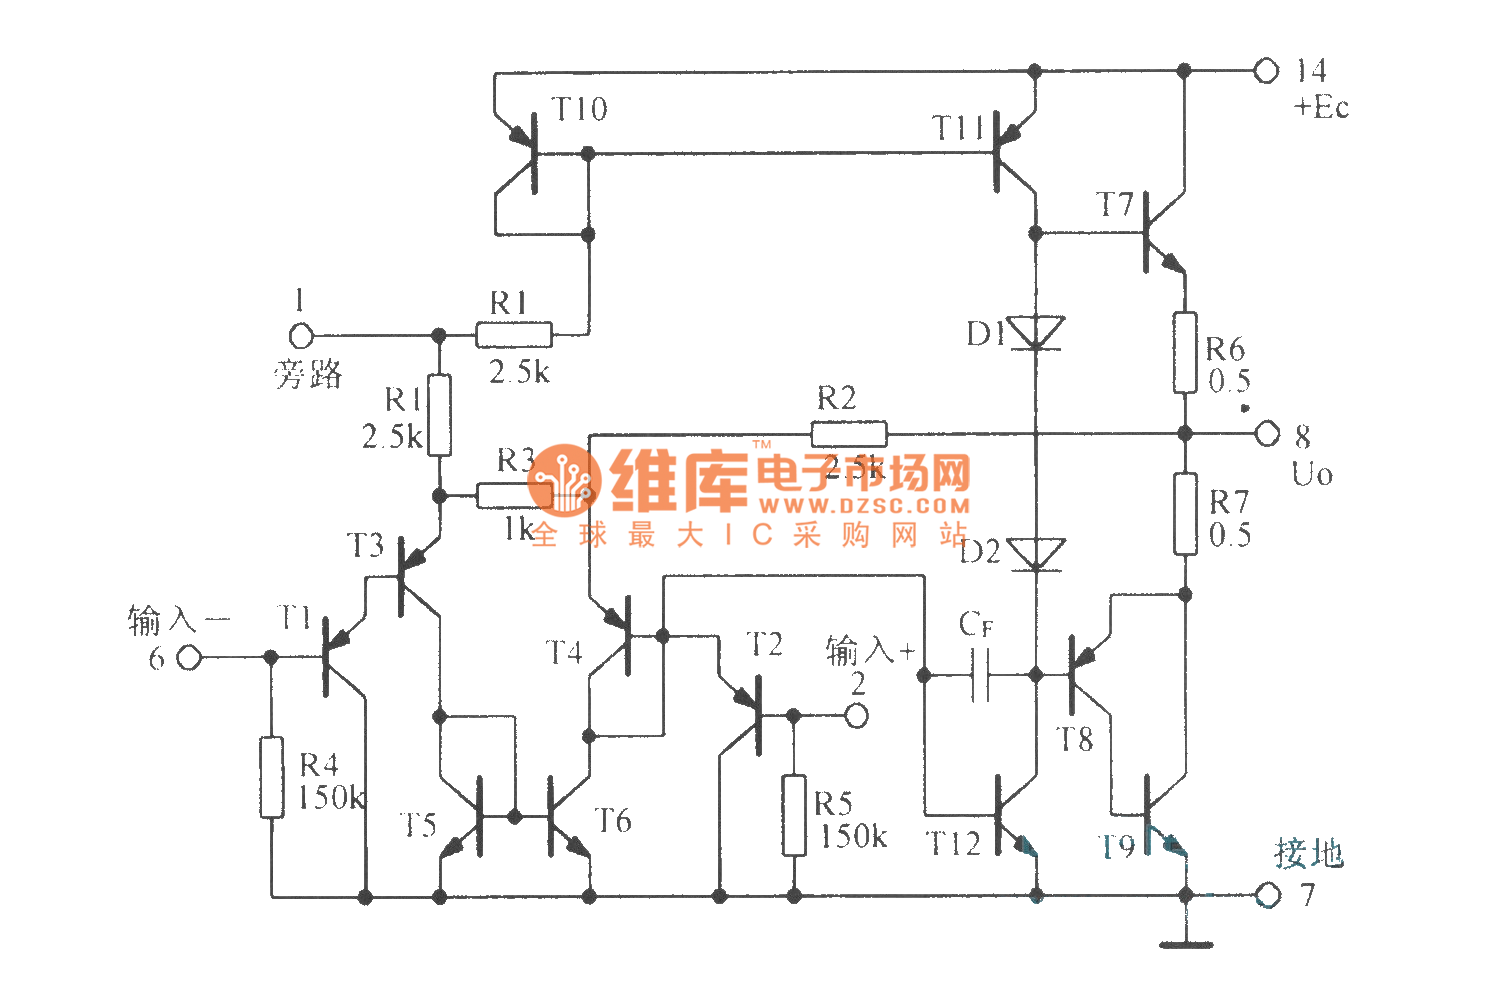 Integrated Audio Power Amplifier Circuit Lm380 Auto Electrical Code Lock Amplifiercircuit Diagram Seekiccom